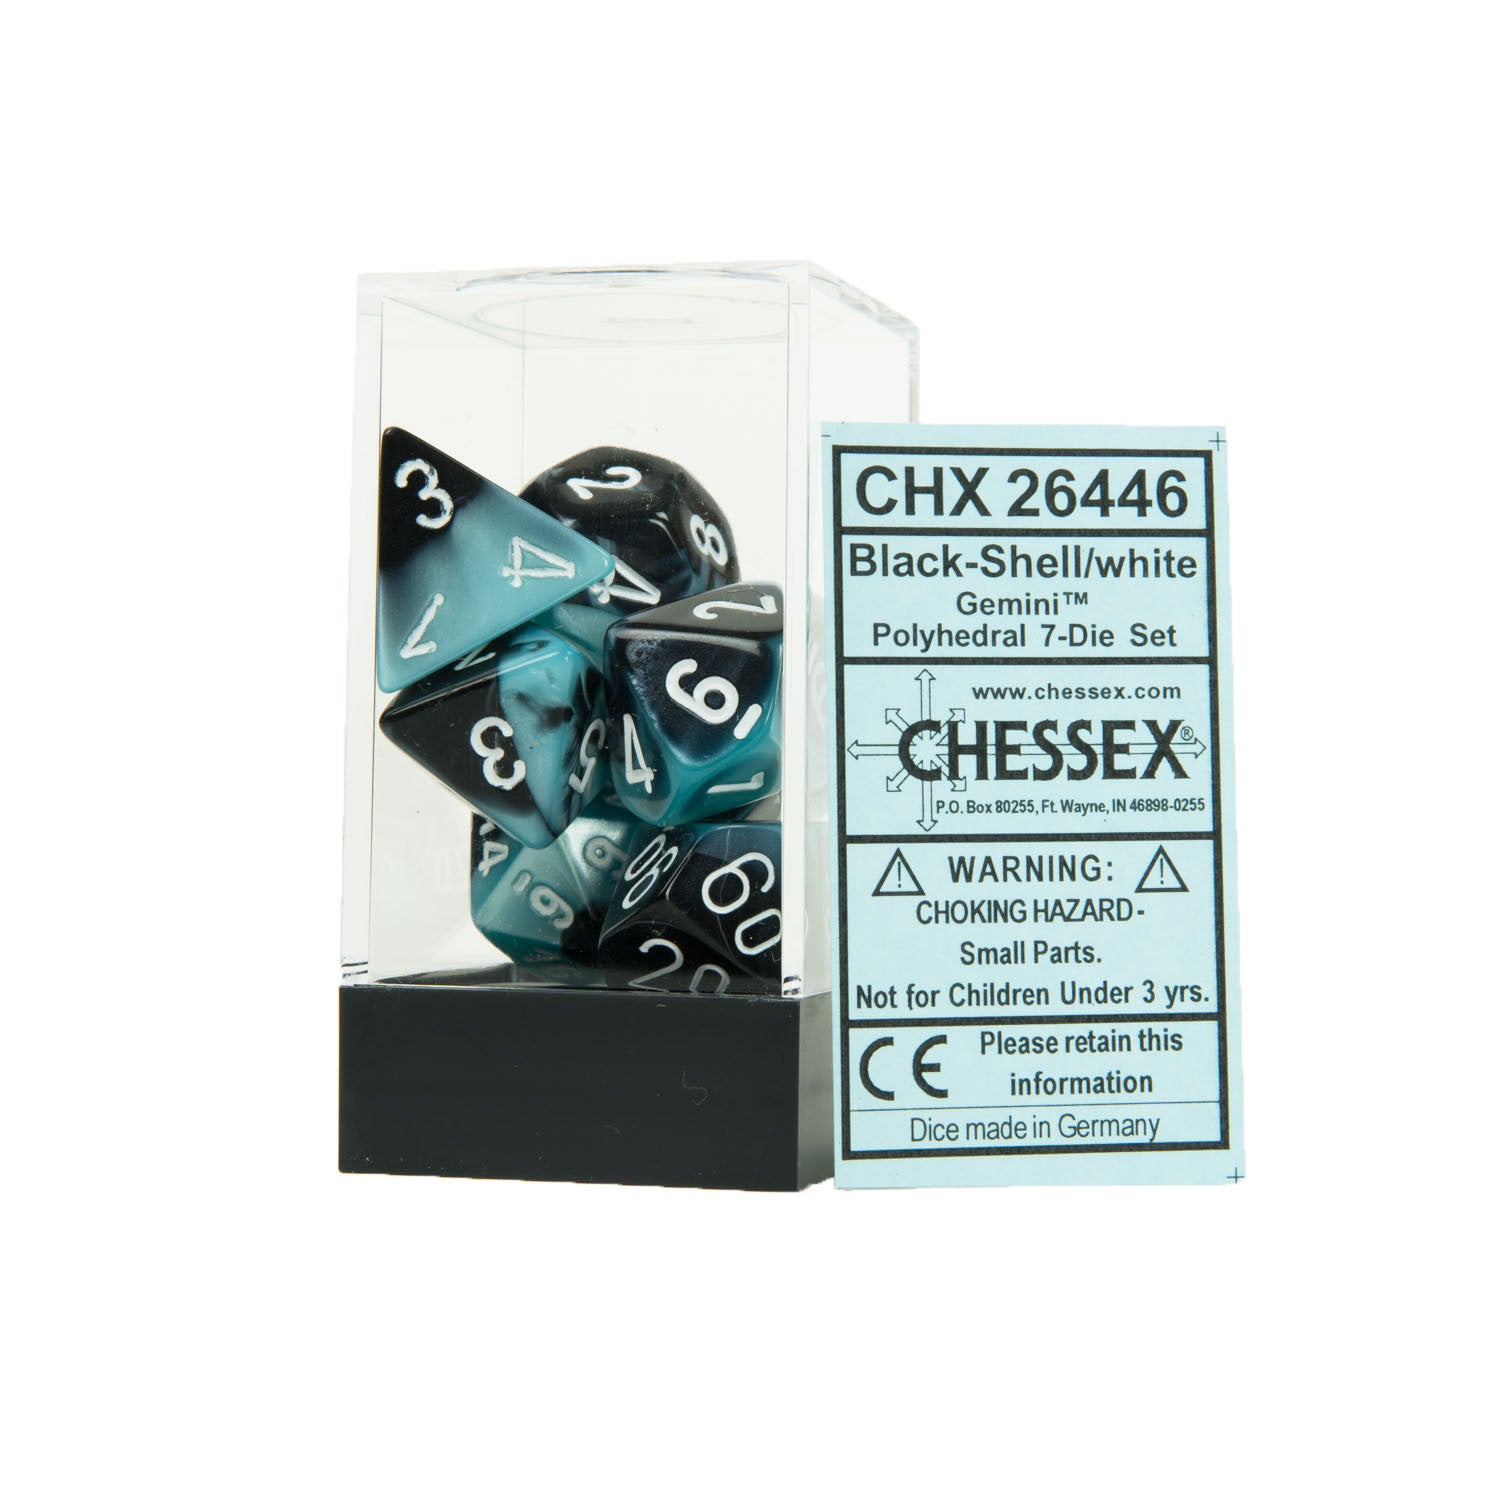 Chessex CHX26446 Black-Shell w/white Gemini™ Polyhedral Dice Set